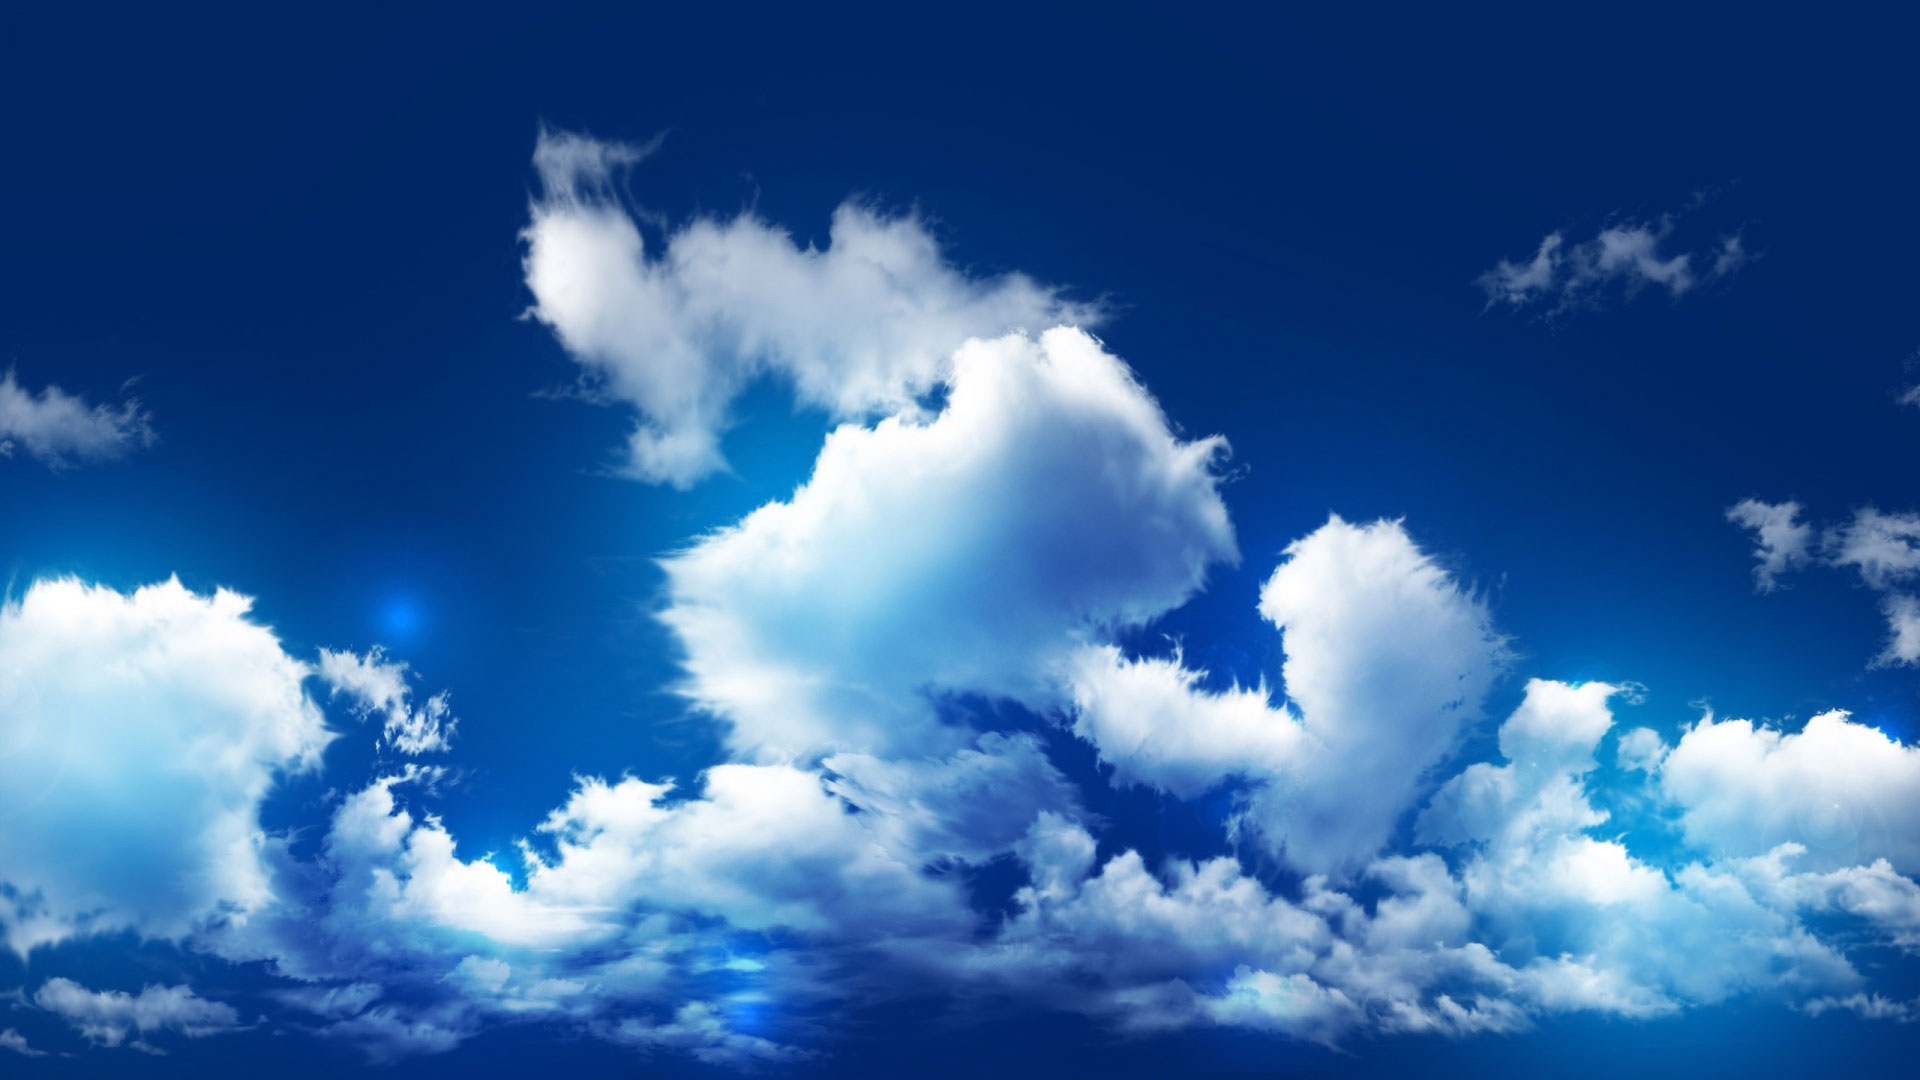 clouds wallpaper blue